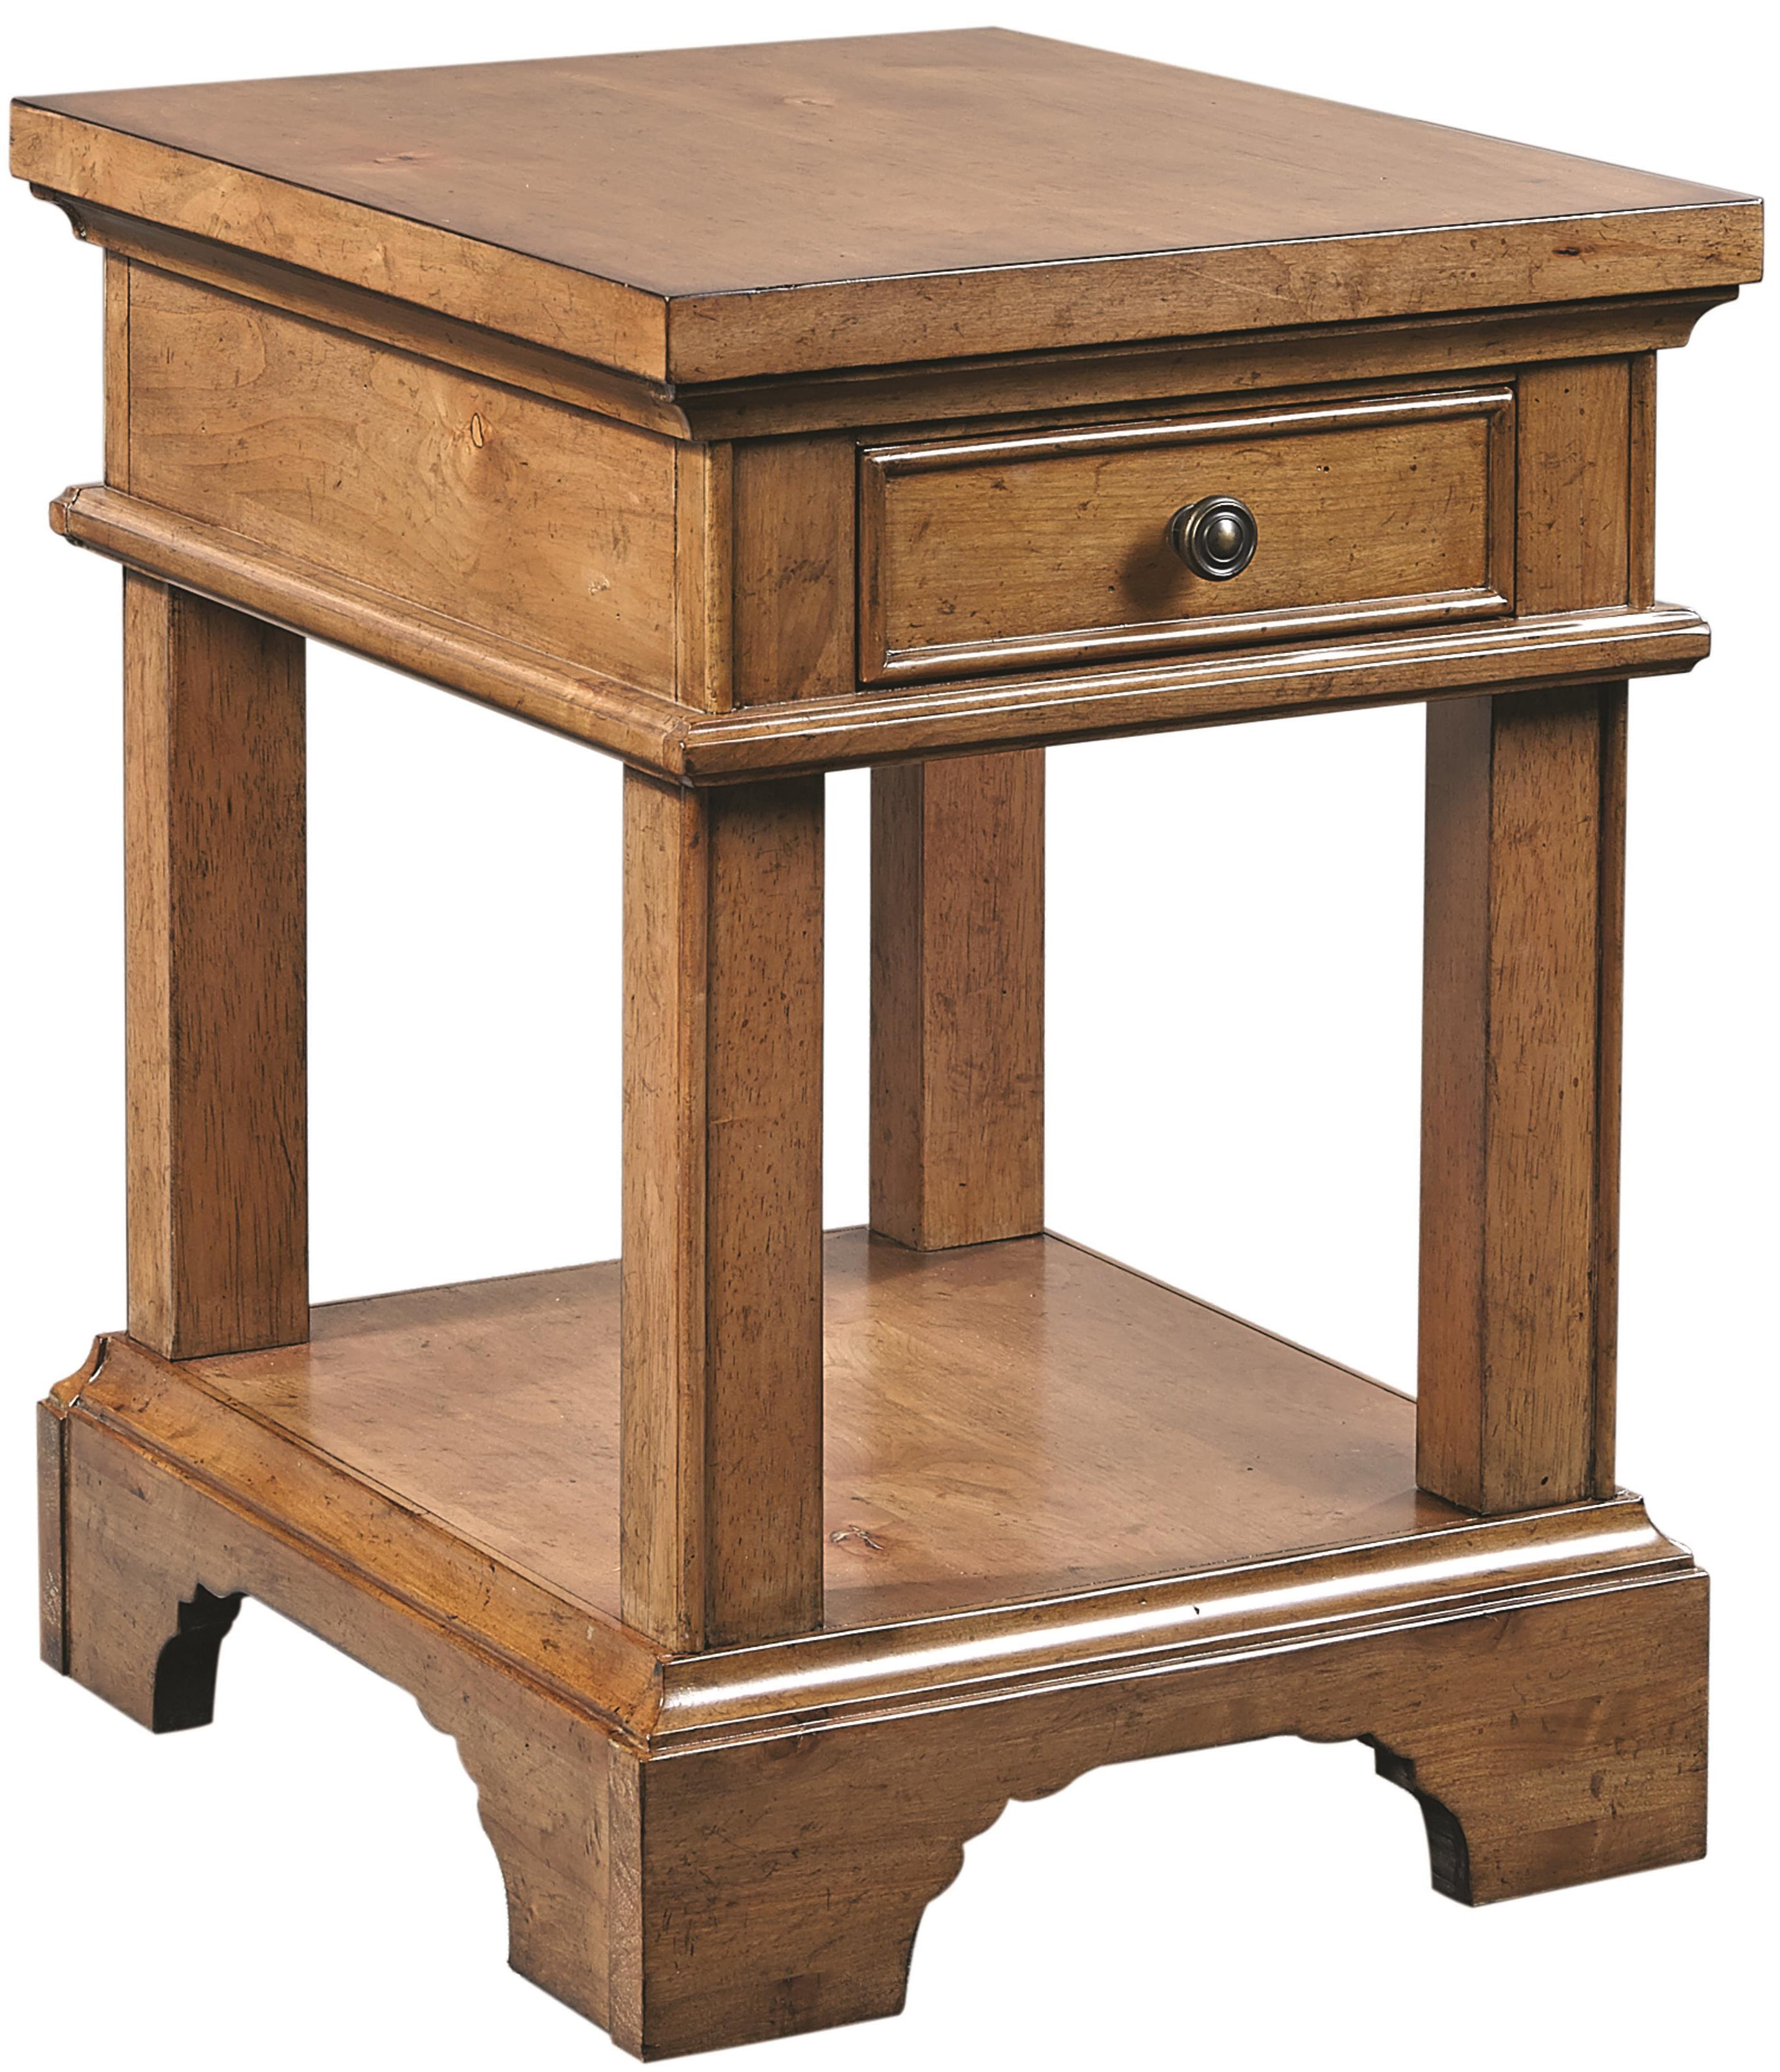 Aspenhome Alder Creek Chairside Table with Power - Item Number: I09-9130